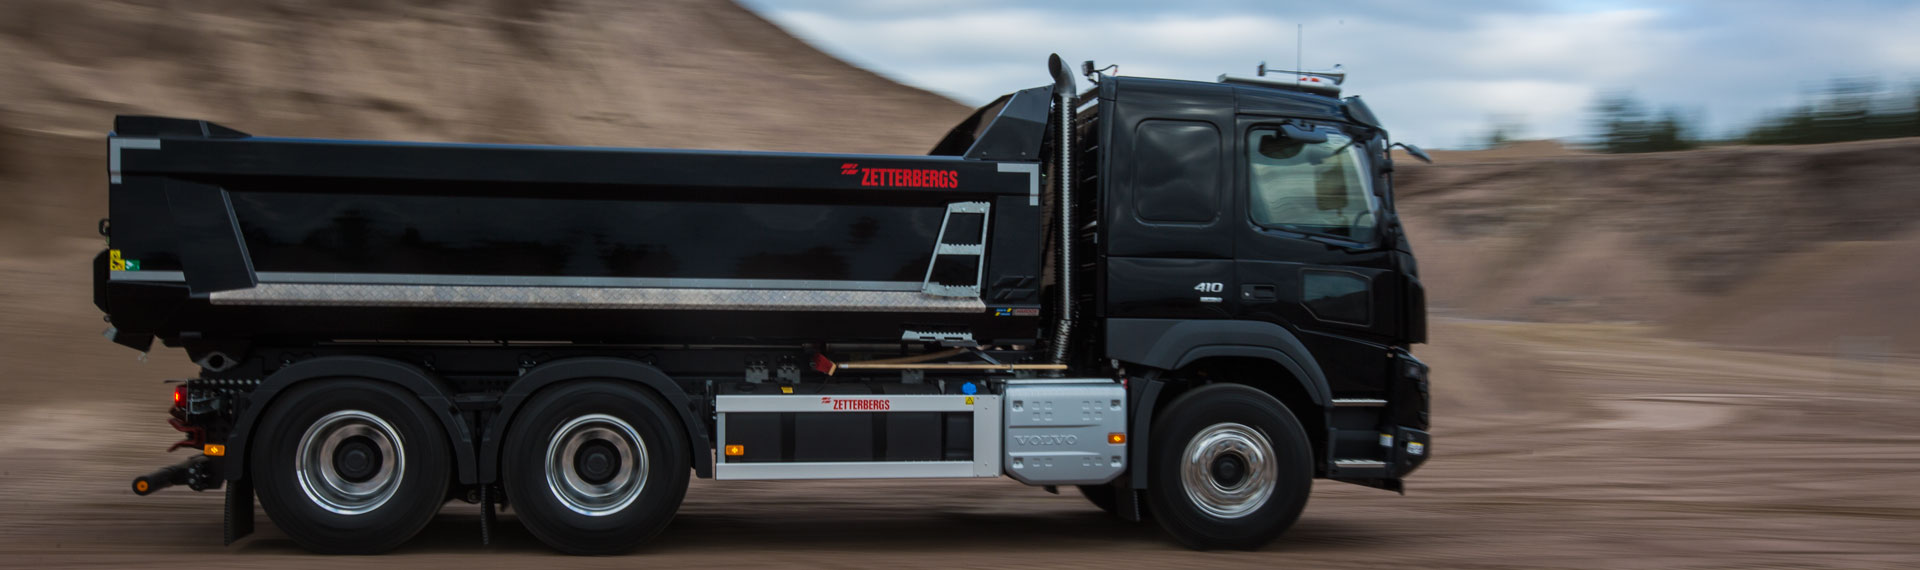 Tipper truck in Hardox 500 Tuf with a conical side panel design